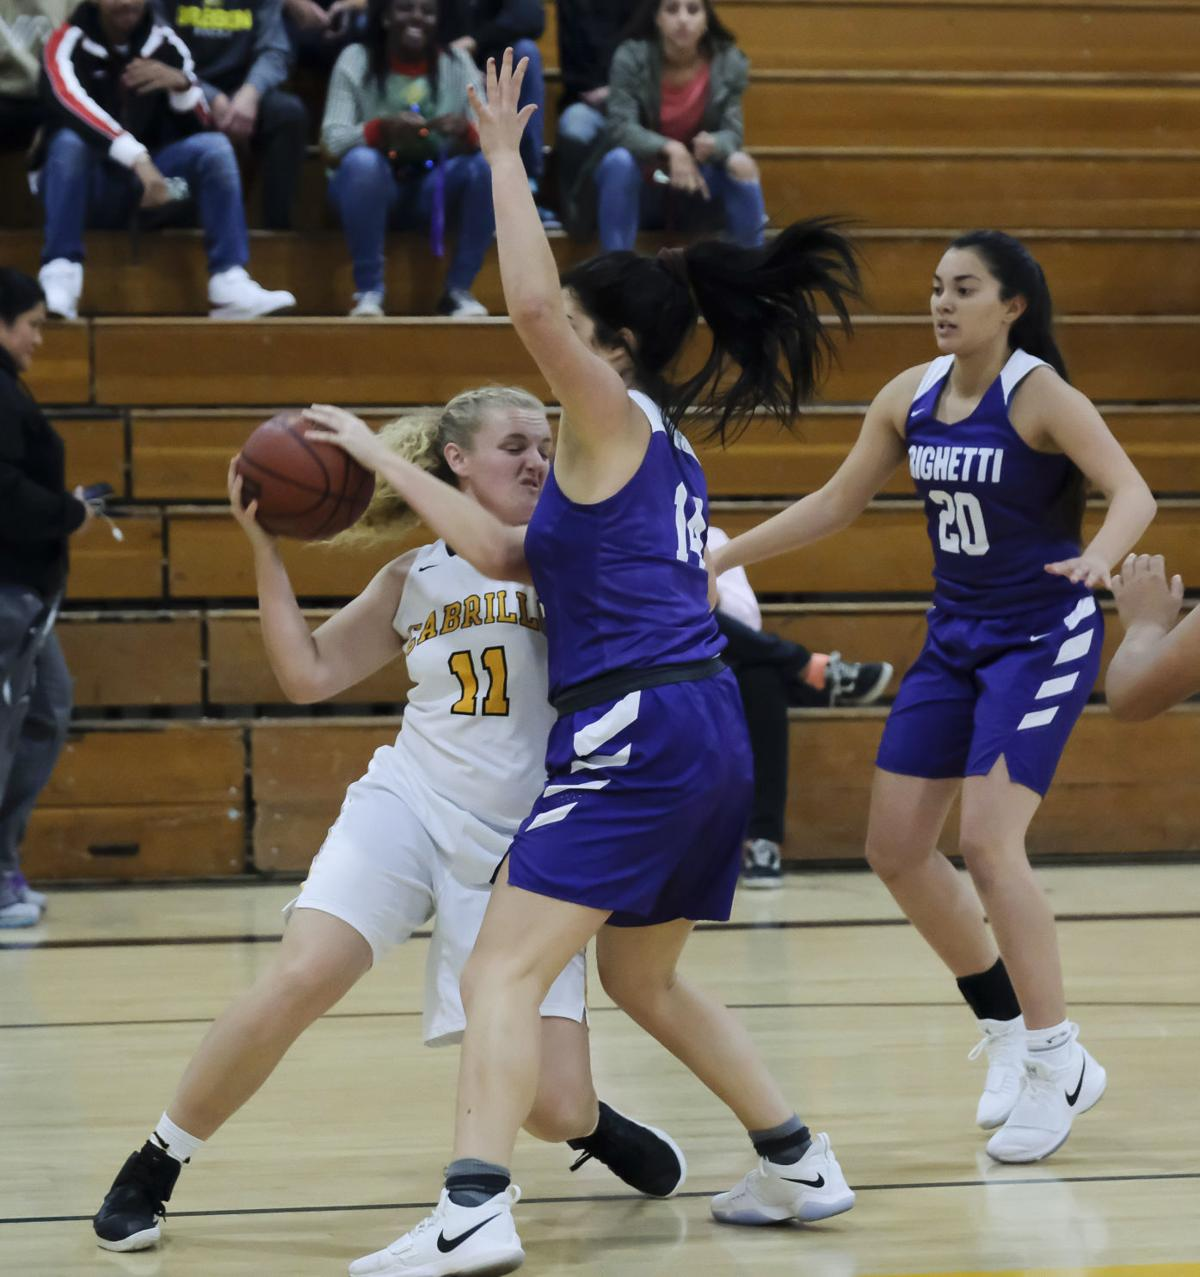 120817 Girls Basketball Righetti at Cabrillo 01.jpg